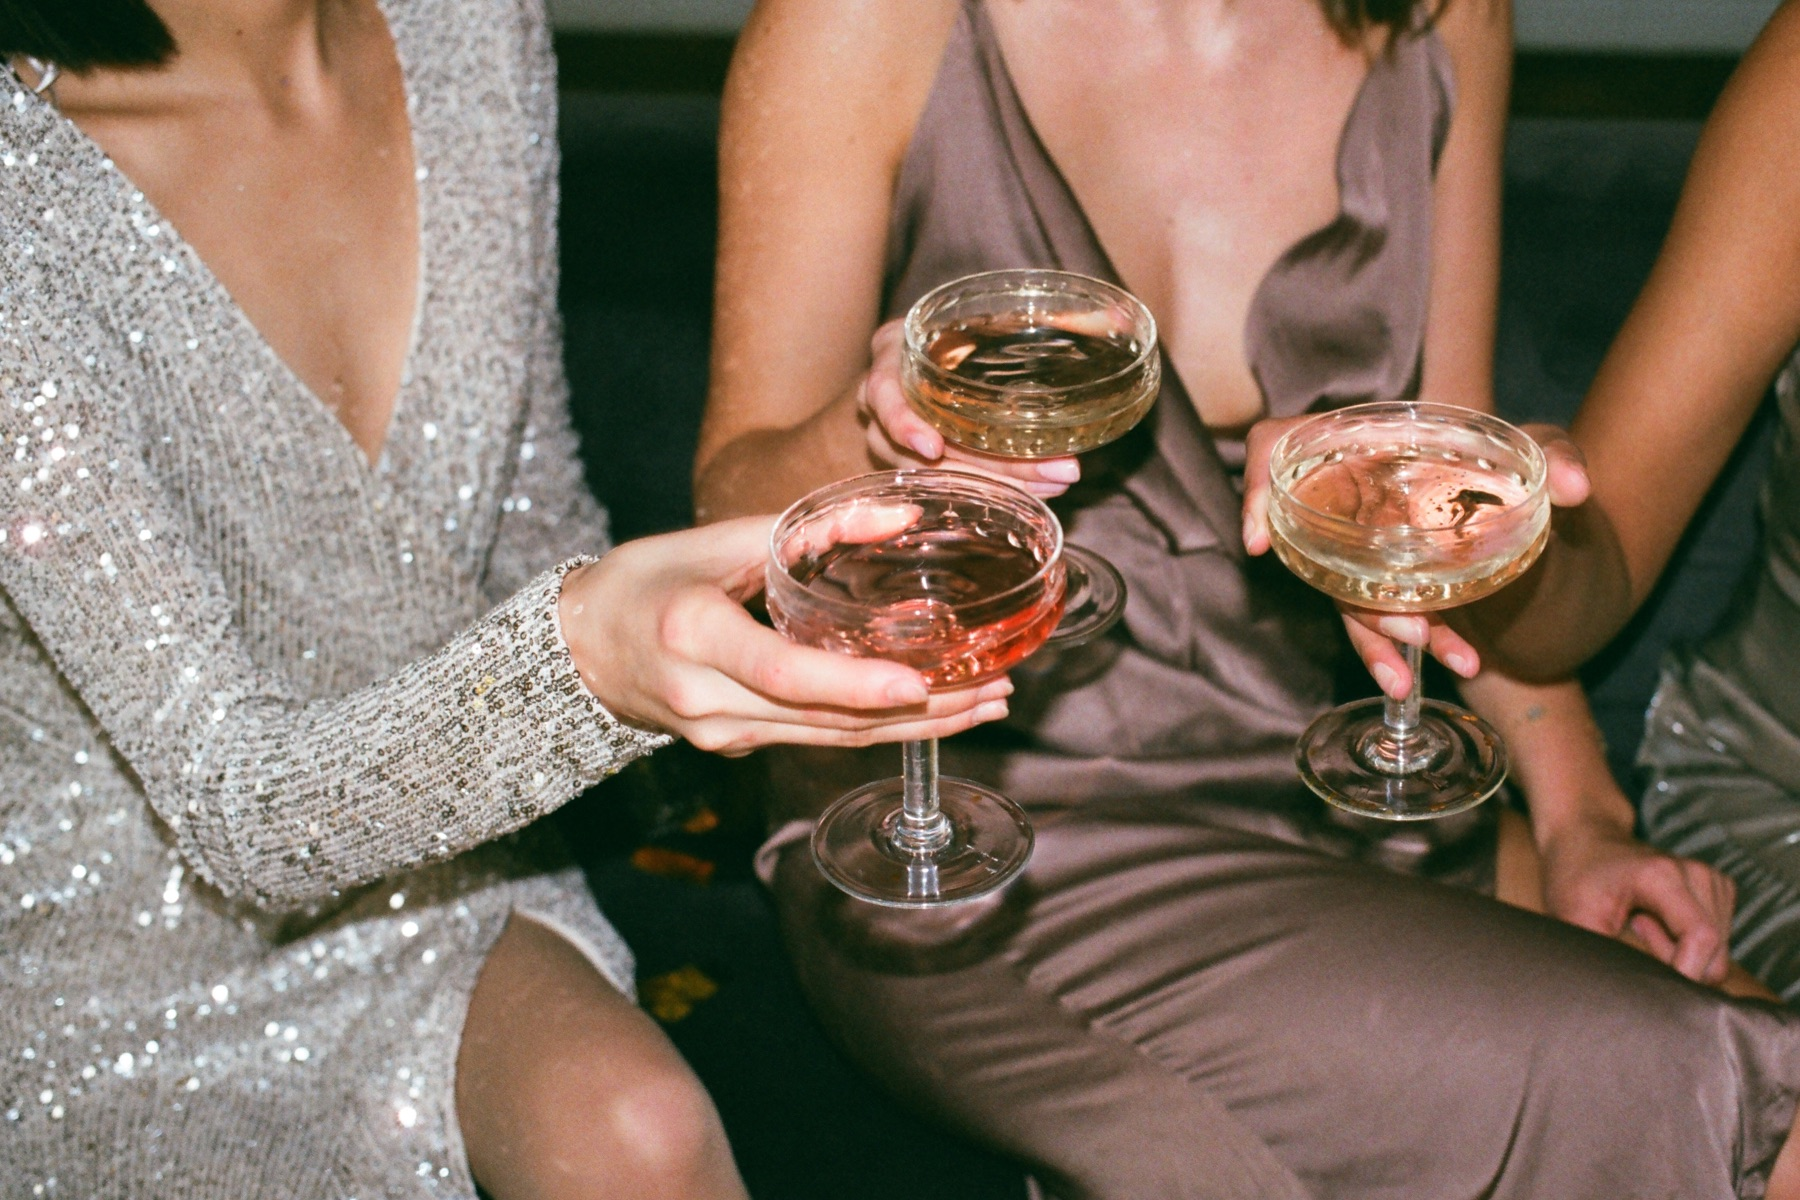 Image of three women toasting their cocktails while wearing fancy evening attire.